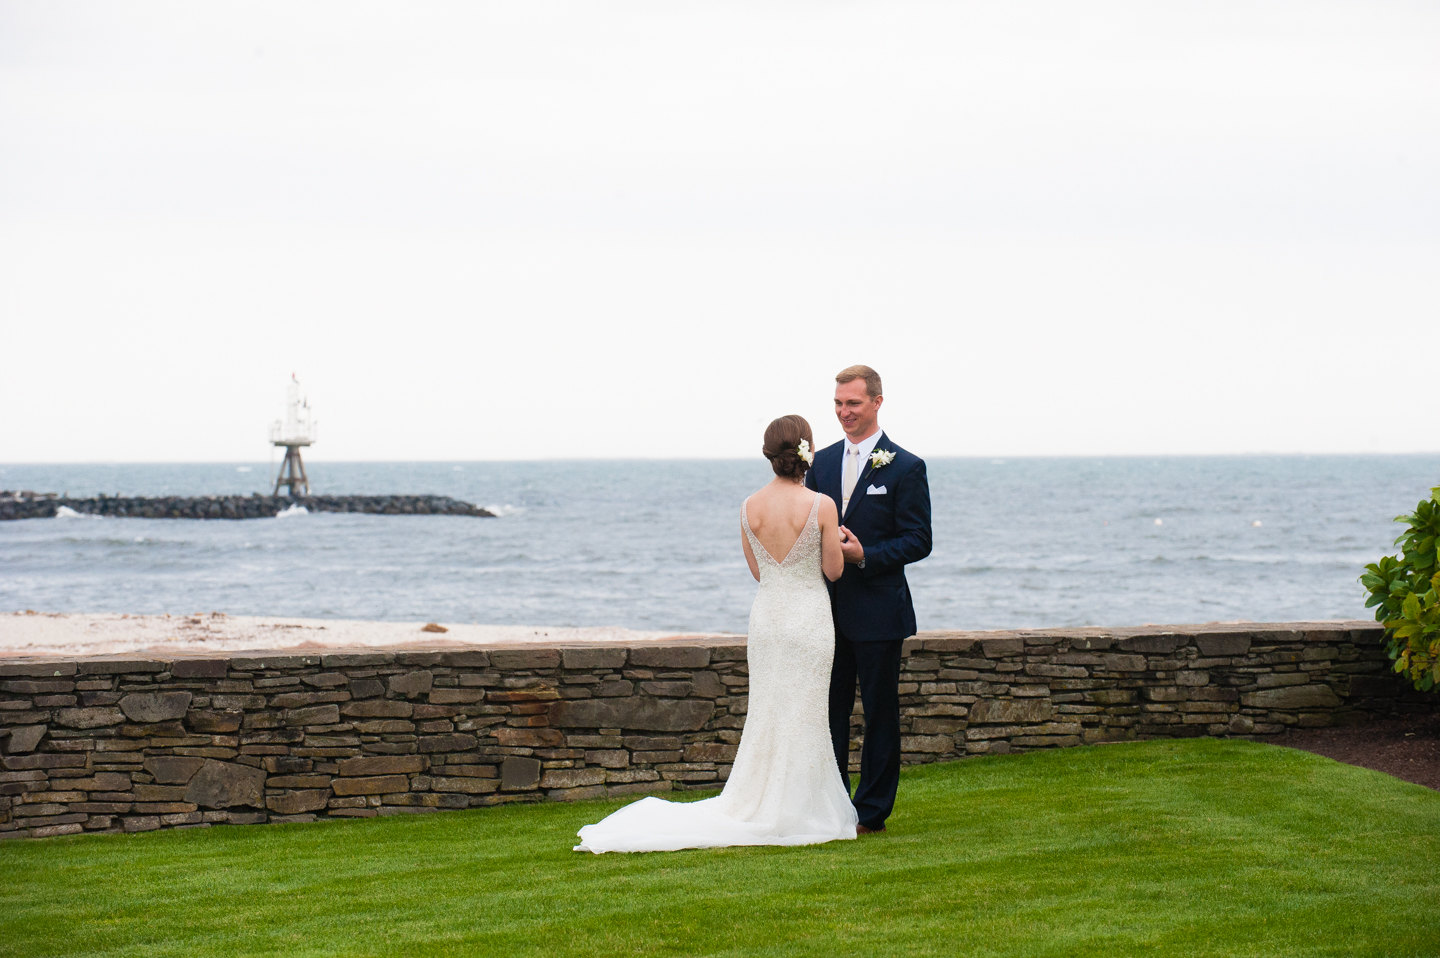 bride and groom looking at each other by the ocean